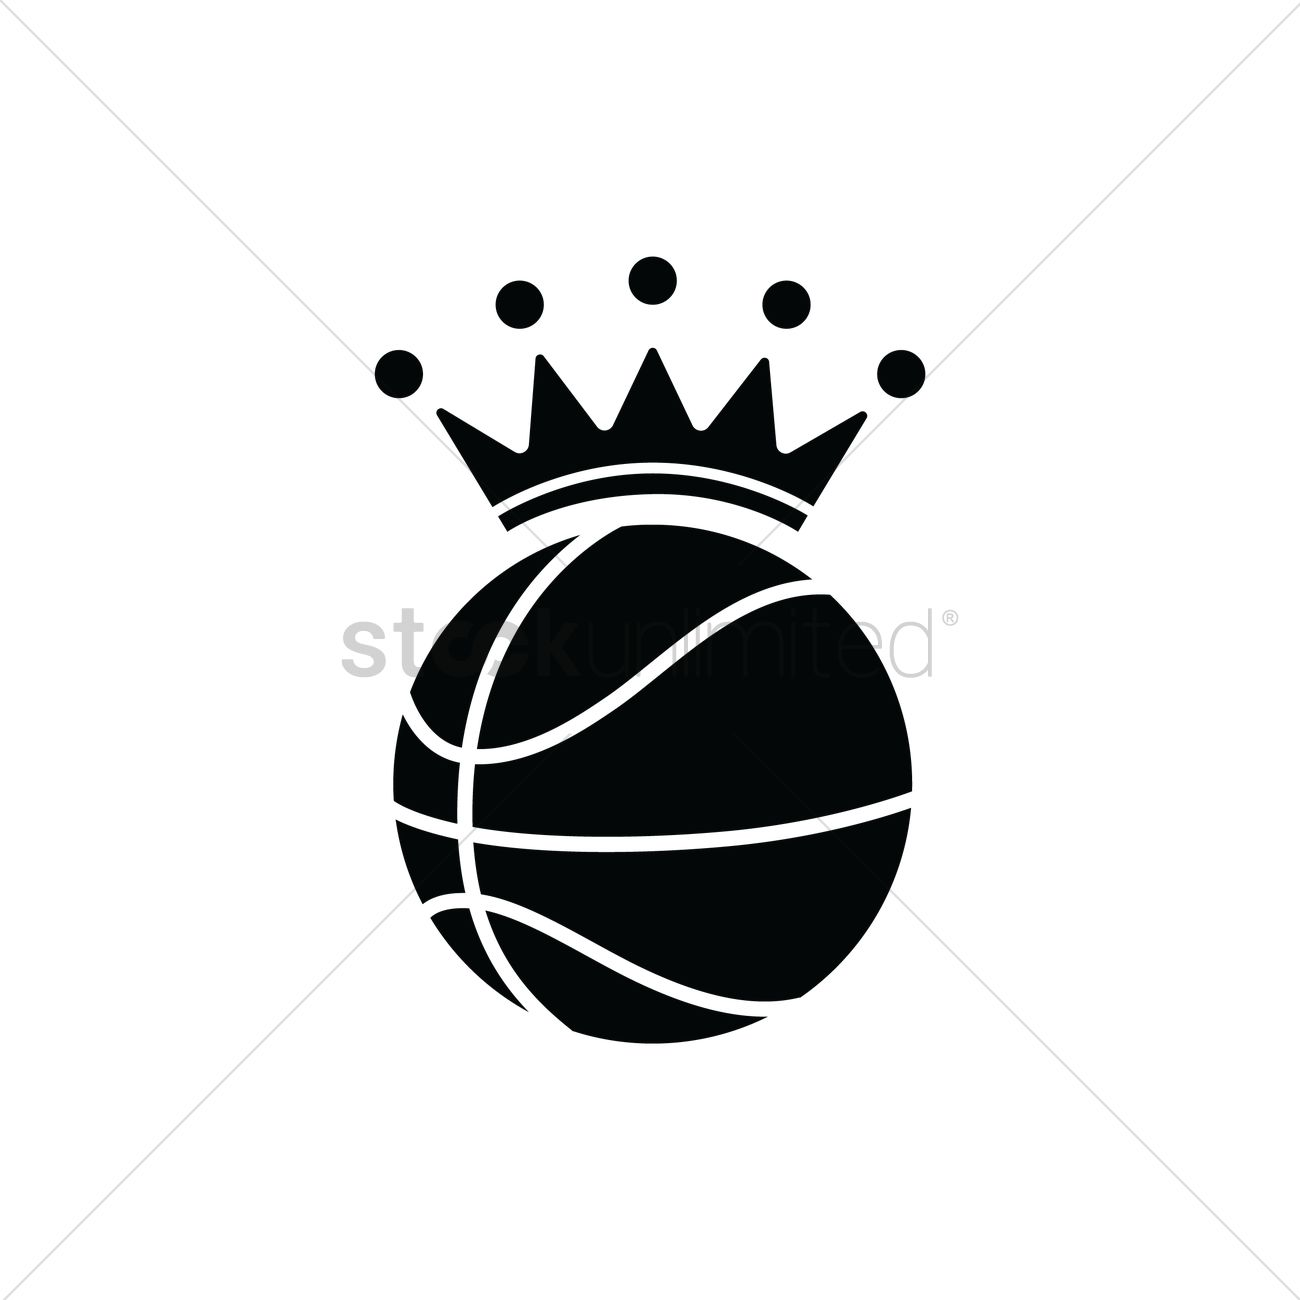 Basketball With A Crown Vector Image